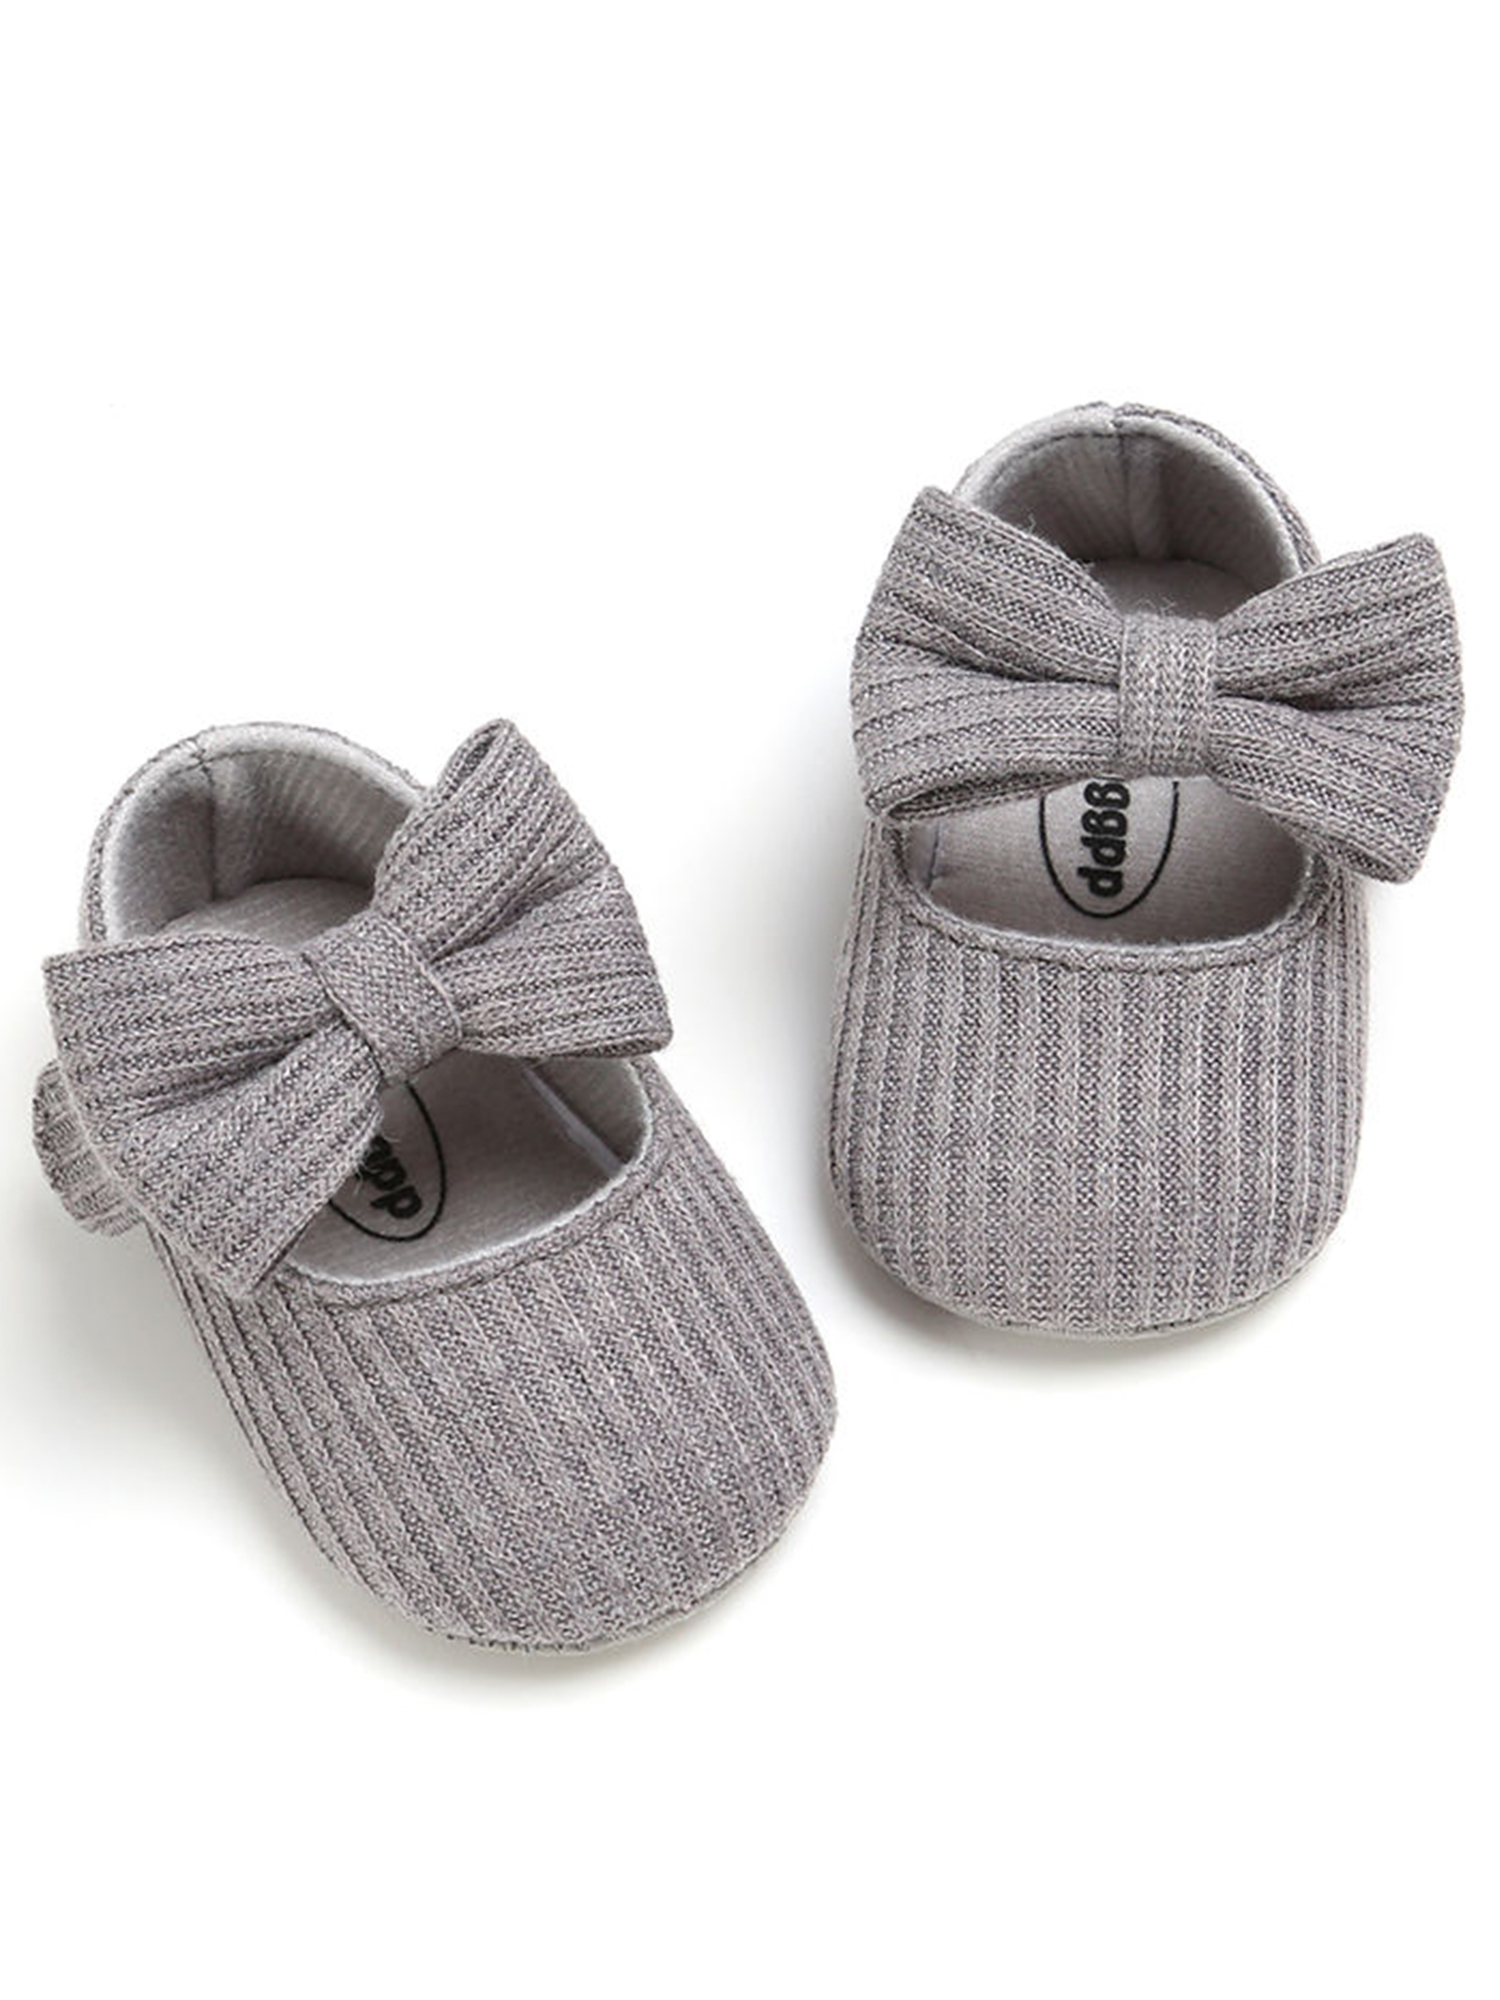 Casual Toddler Kids Baby Girls Princess Bows Stylish Shoes Knitted Soft Sole New